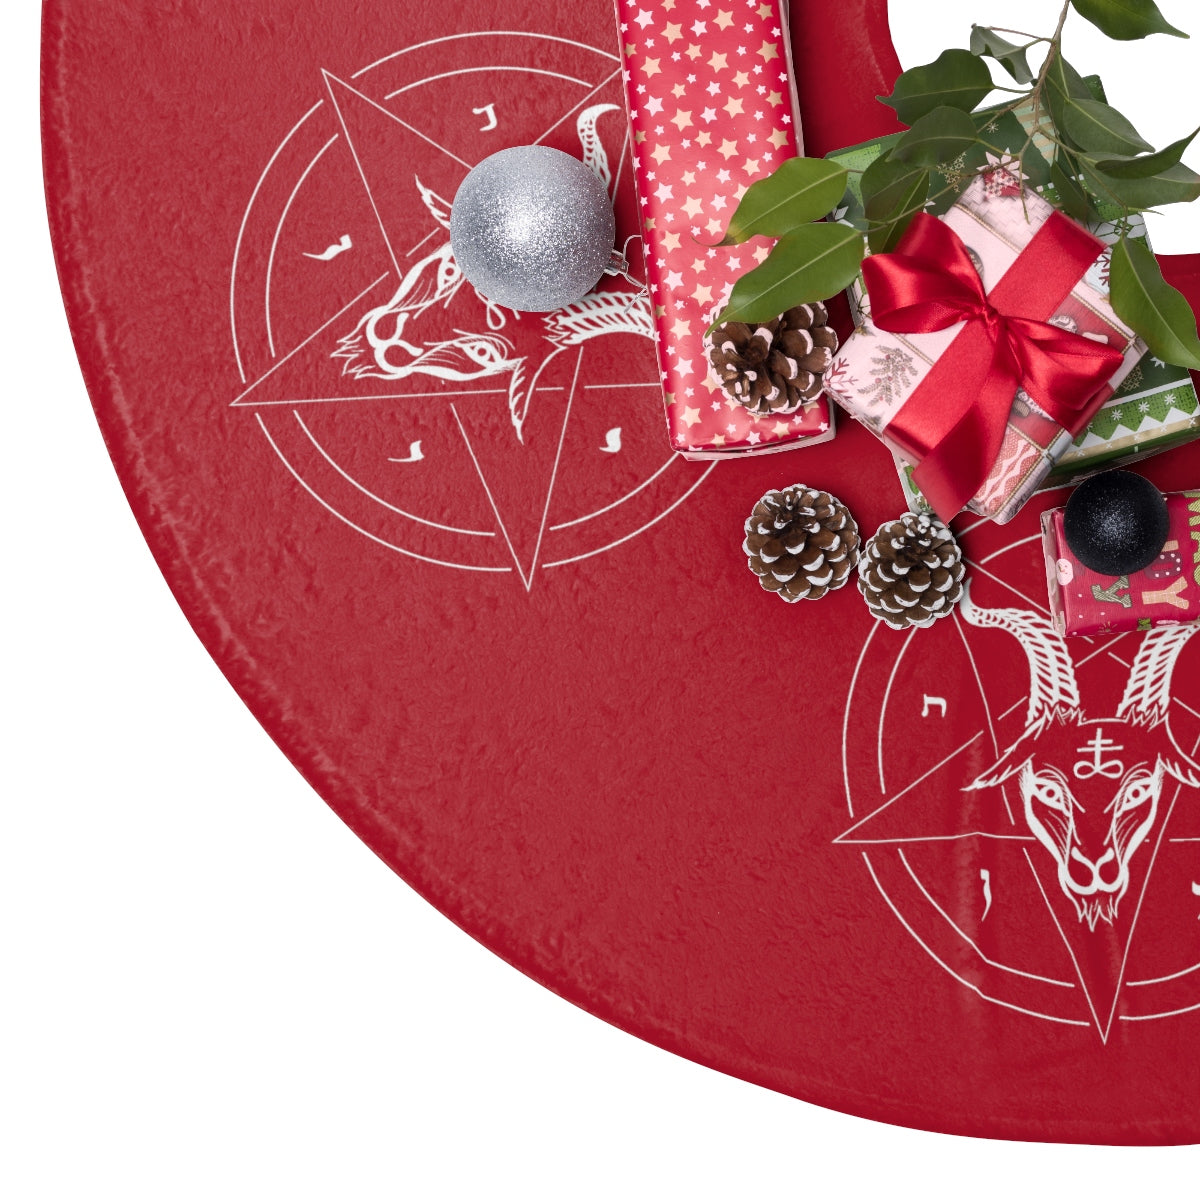 Fuzzy Satanic Baphomet Christmas Tree Skirt - Logikal Threads